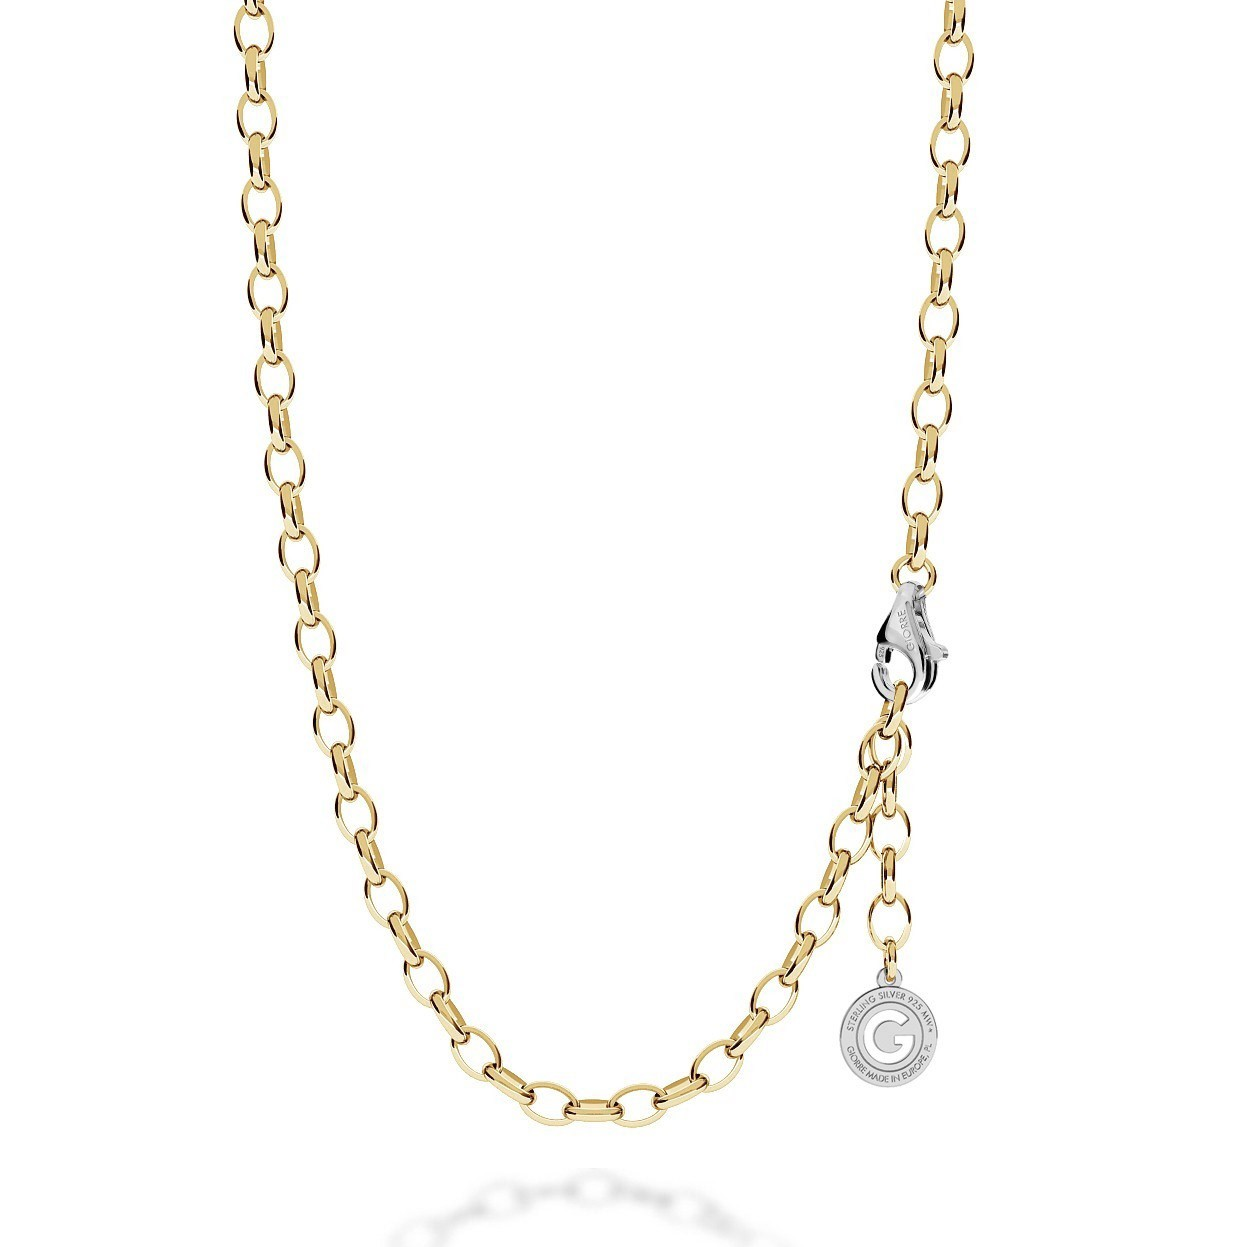 Sterling silver necklace 55-65 cm light rhodium, yellow gold clasp, link 7x5 mm